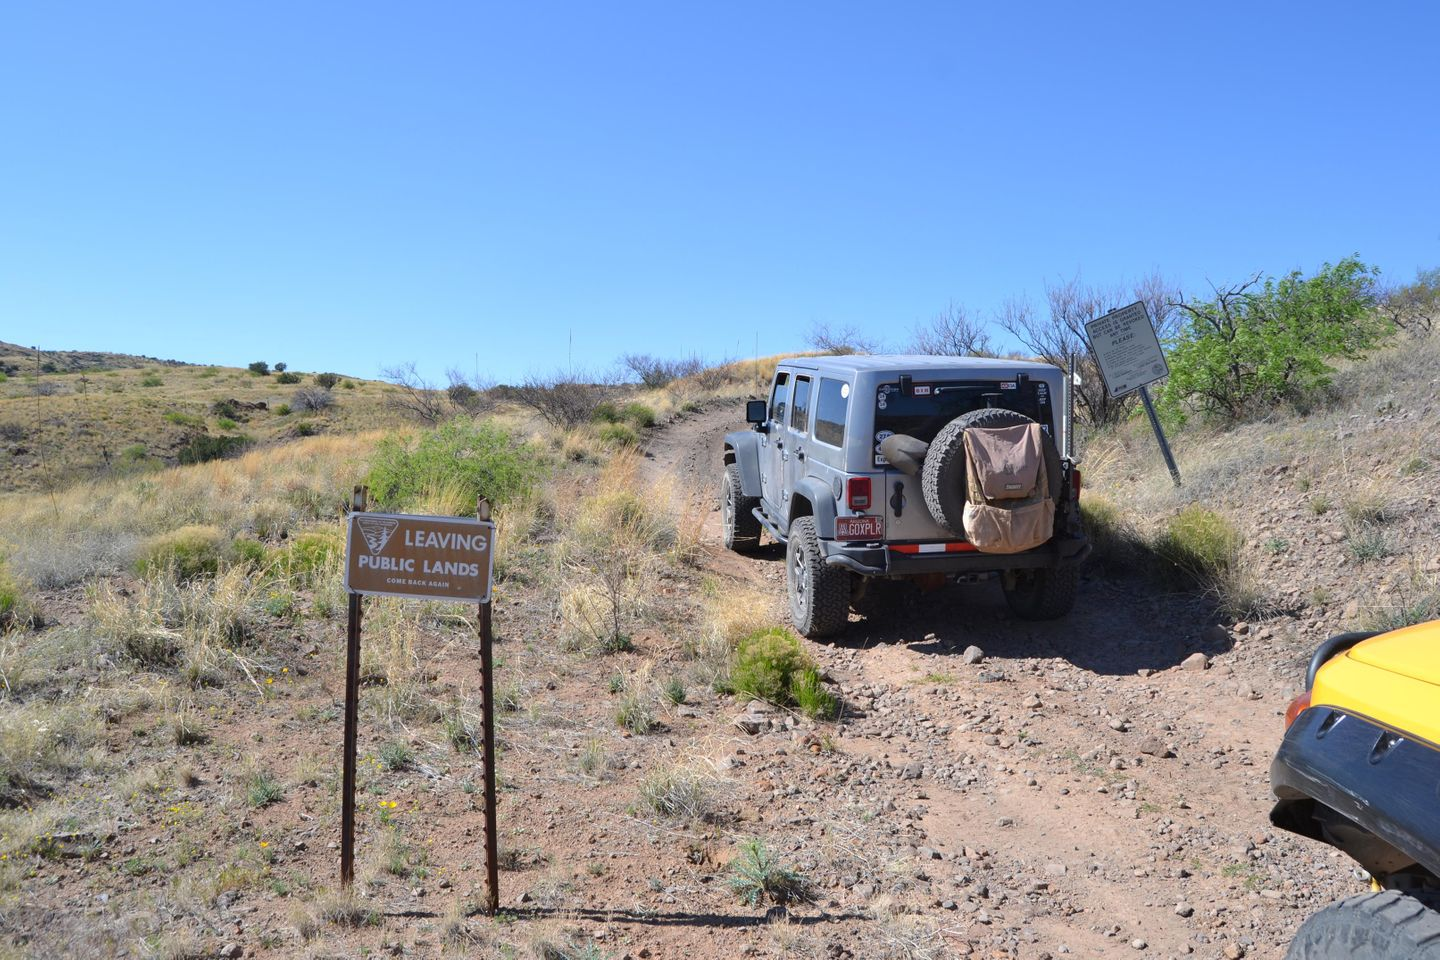 Jackson Cabin/Muleshoe Ranch Road - Waypoint 10: Entering Private Lands